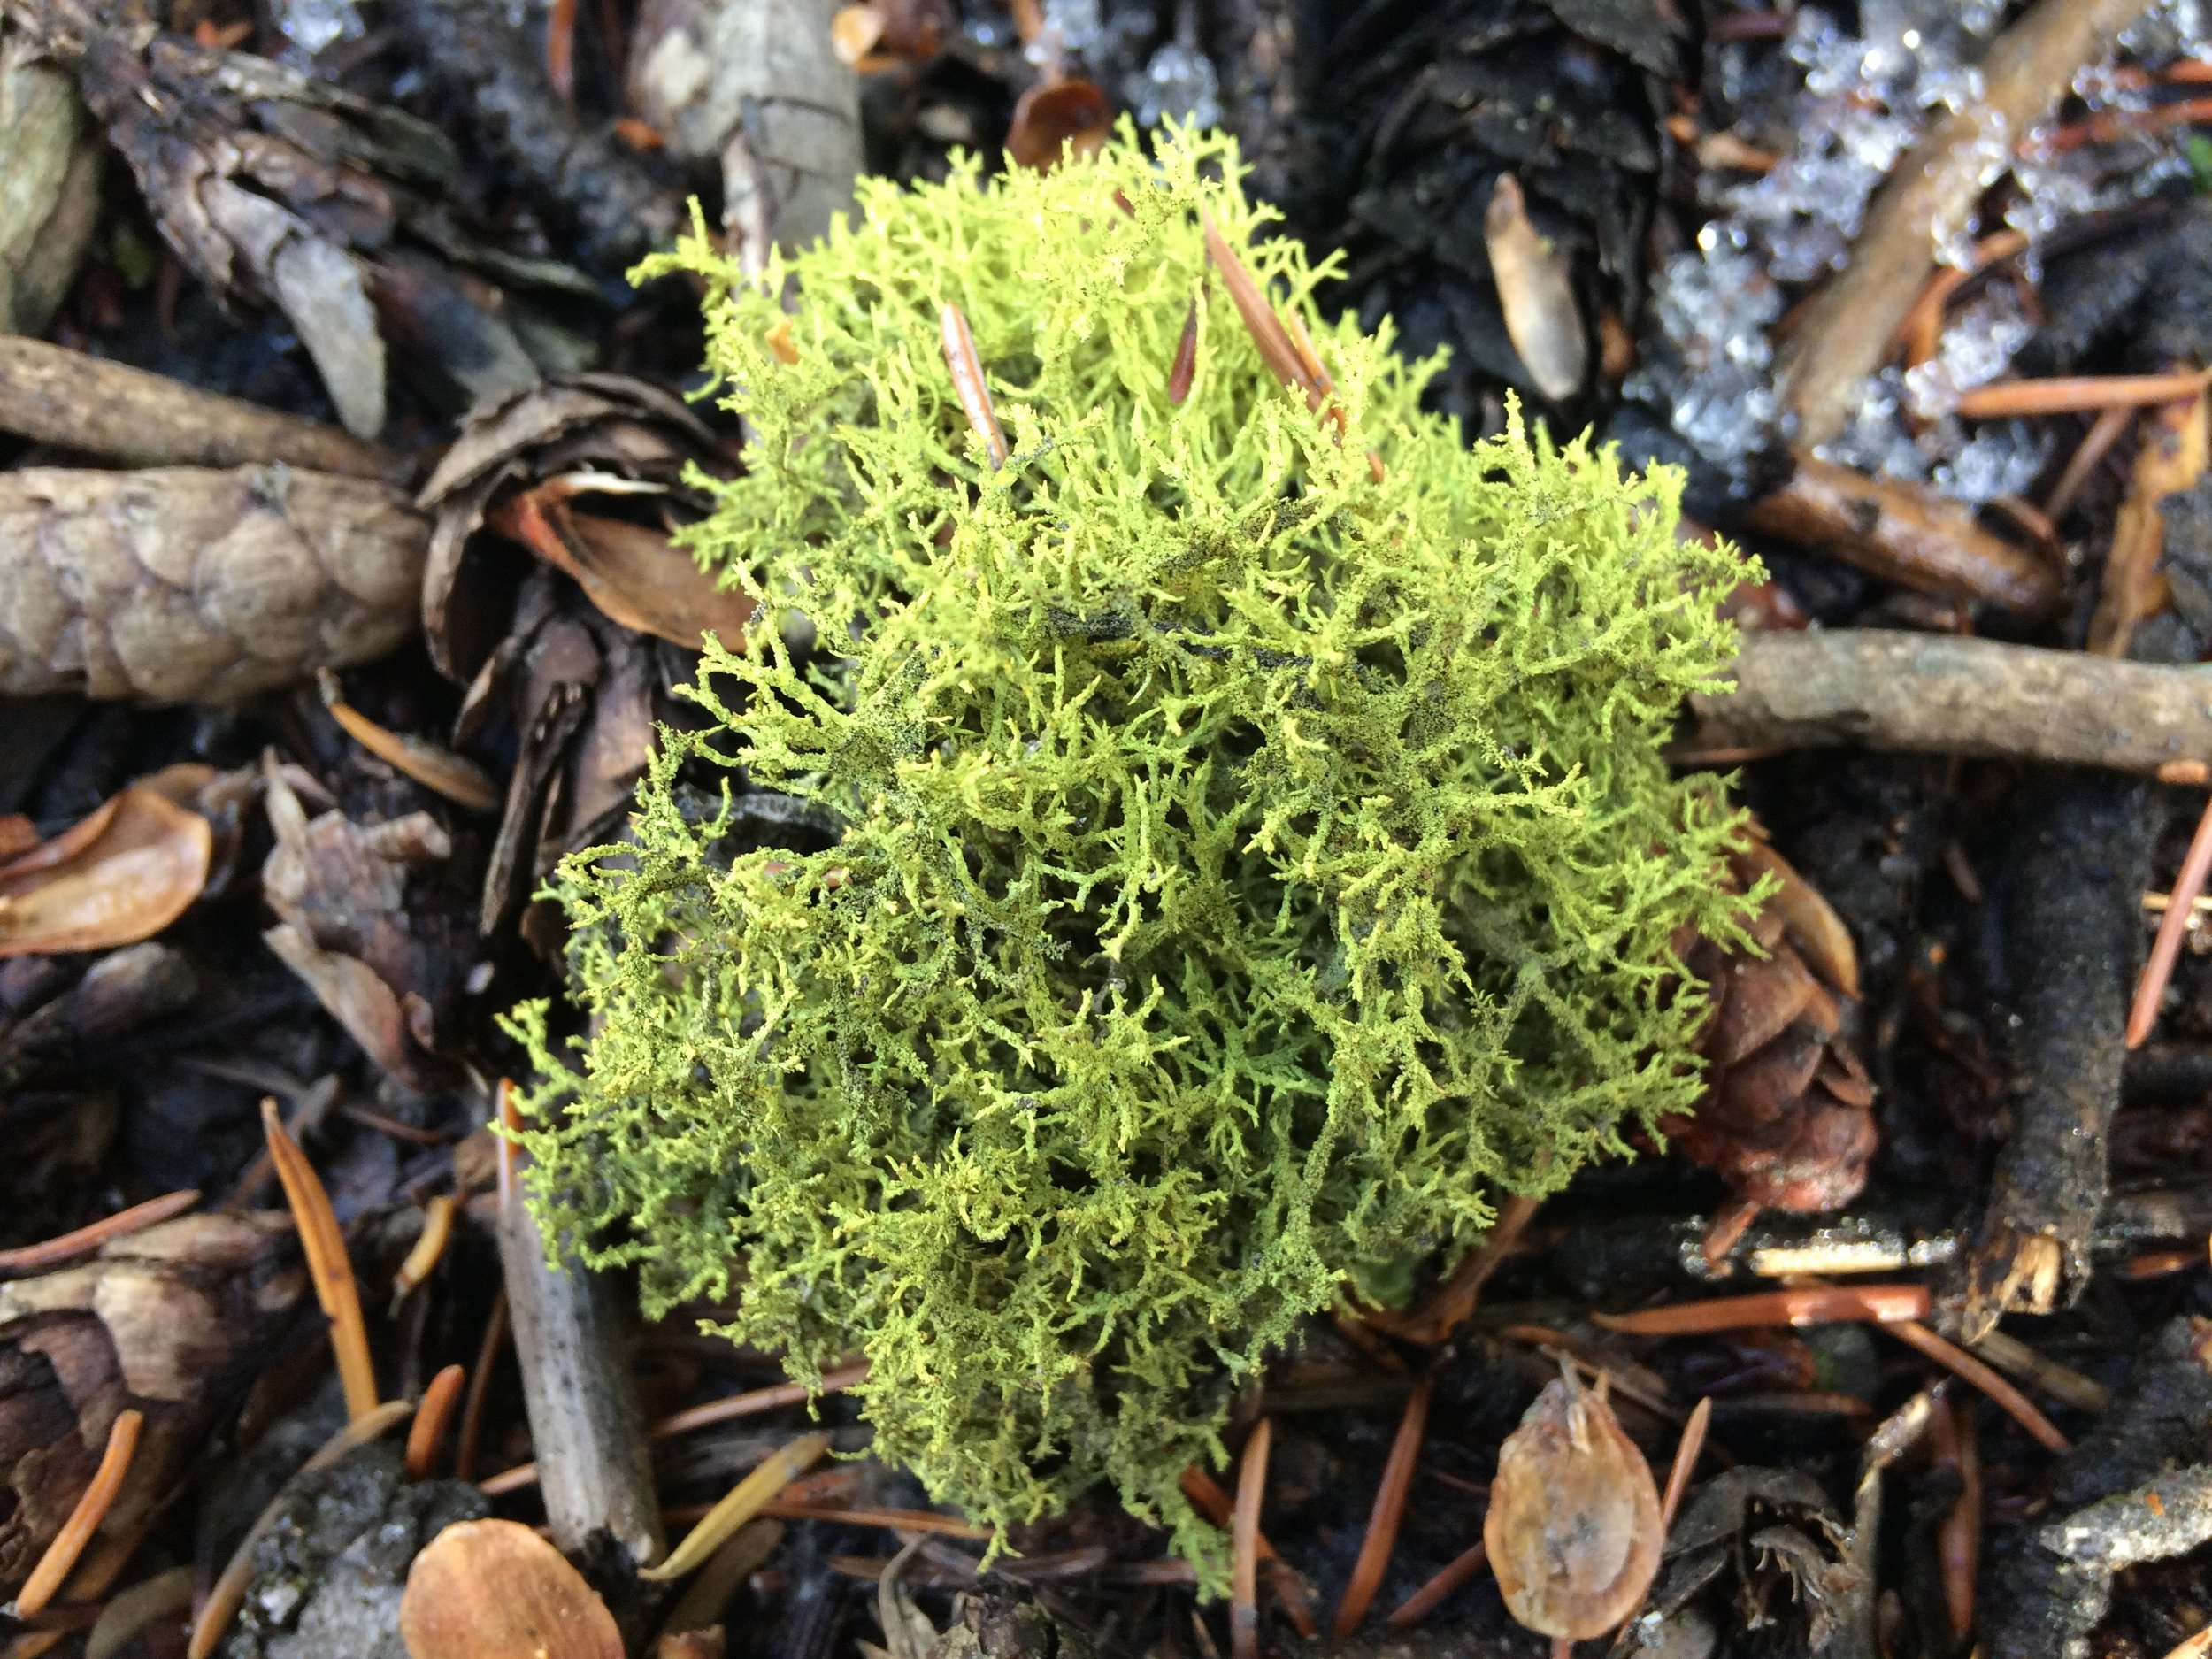 Moss, somatic experiencing offered by Courtney Wren Mabbutt, a therapist in Nelson, Castlegar, and the Slocan Valley.